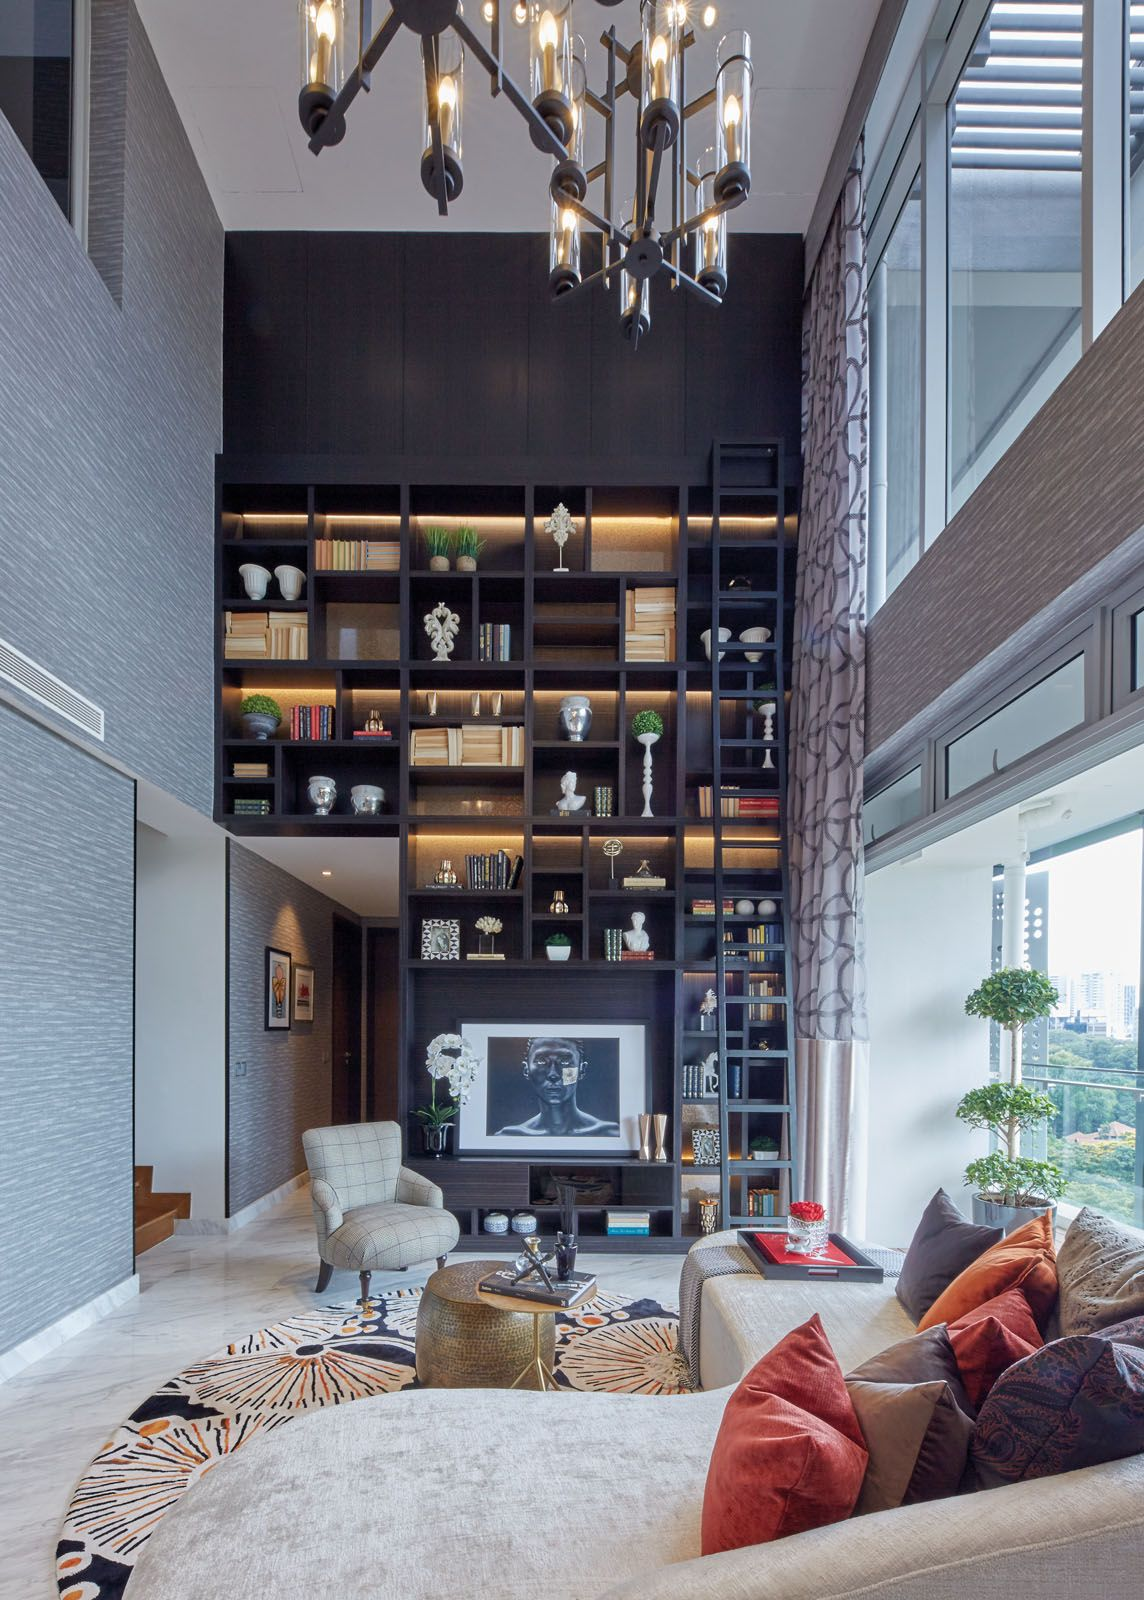 Home Tour: A Modern Penthouse With Brilliant Balconies Overlooking The Lion City